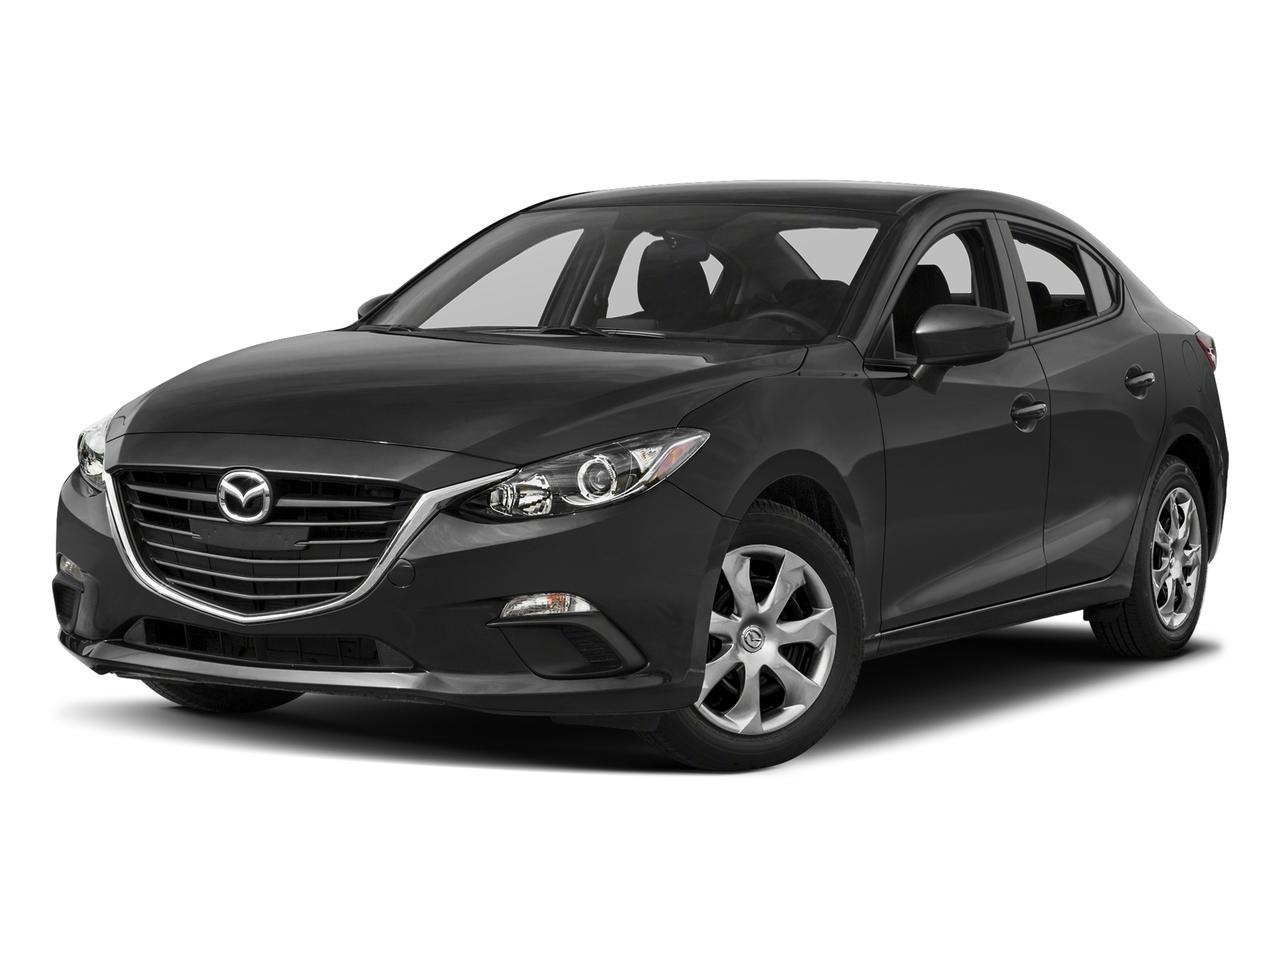 2016 Mazda3 Vehicle Photo in Rockville, MD 20852